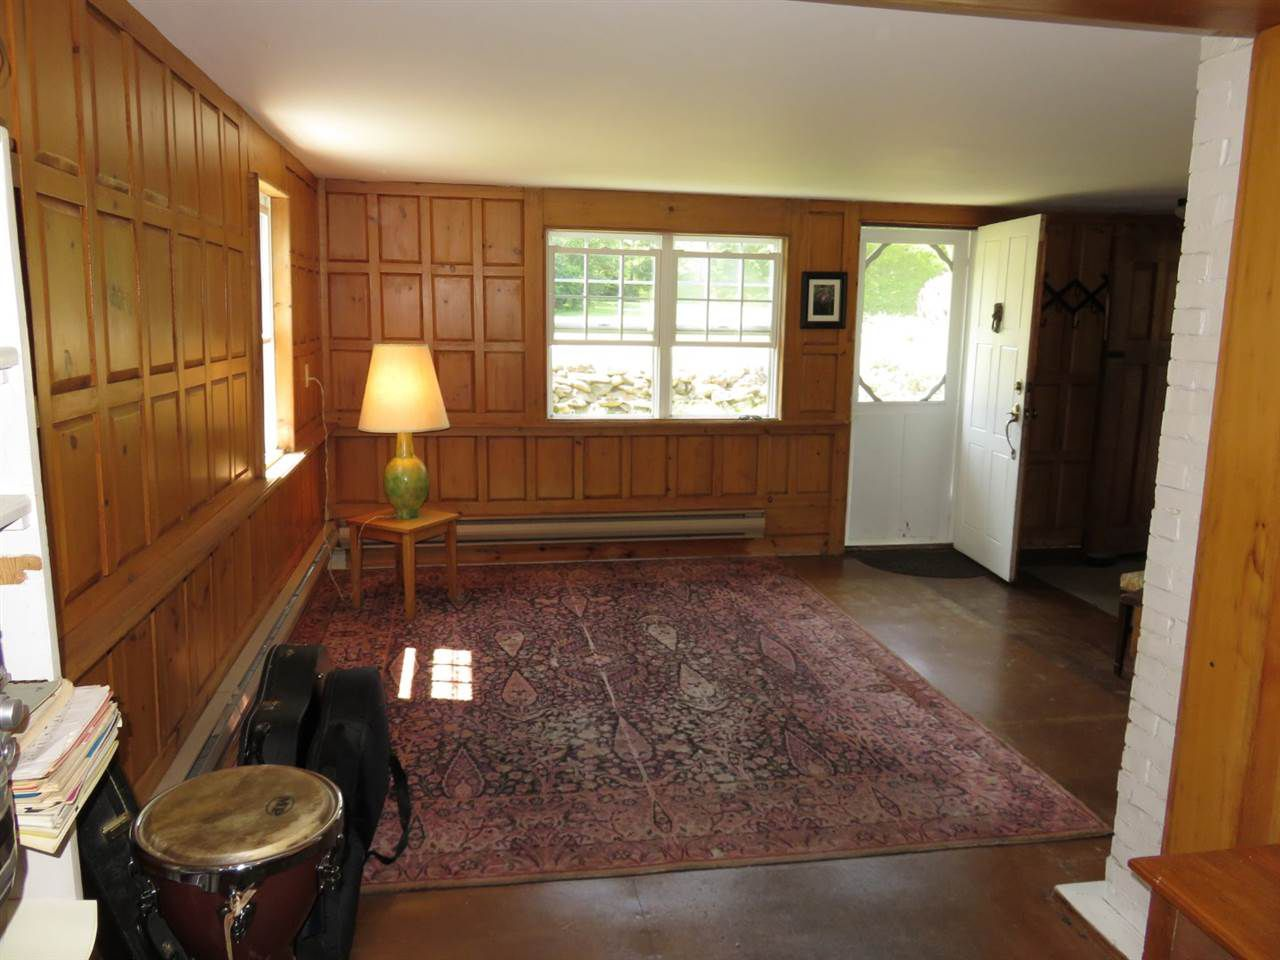 Photo 17: Photos: 5132 Sandy Point Road in Jordan Ferry: 407-Shelburne County Residential for sale (South Shore)  : MLS®# 201719775